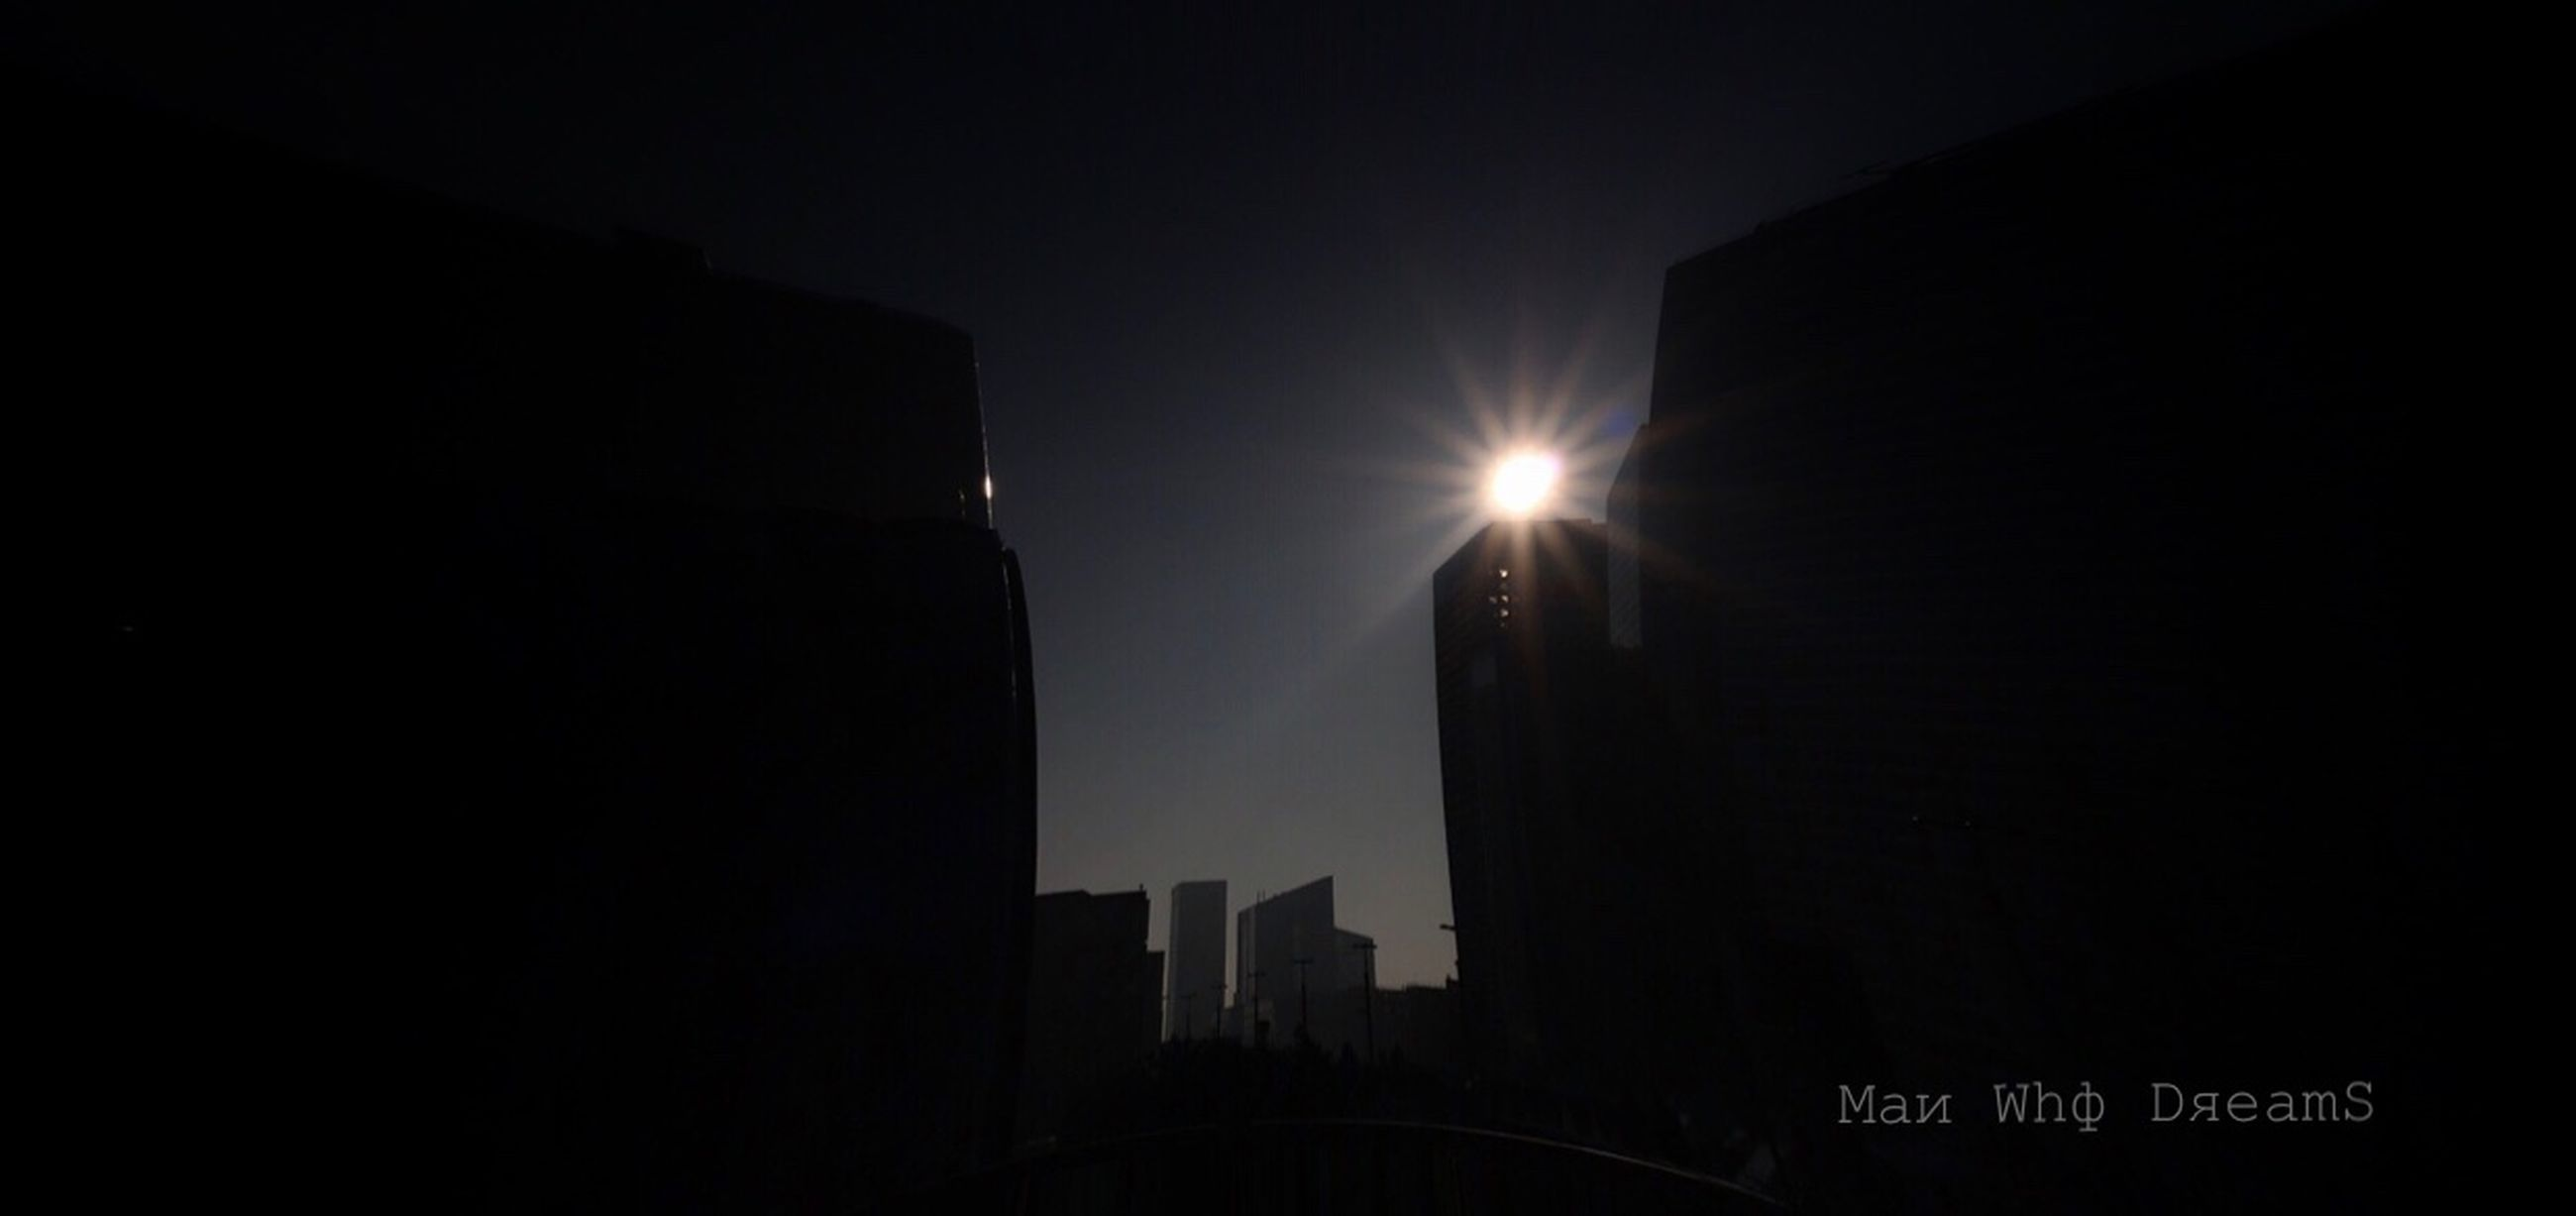 built structure, building exterior, sky, architecture, no people, sun, low angle view, building, nature, silhouette, lens flare, city, illuminated, copy space, outdoors, sunlight, tower, dark, clear sky, skyscraper